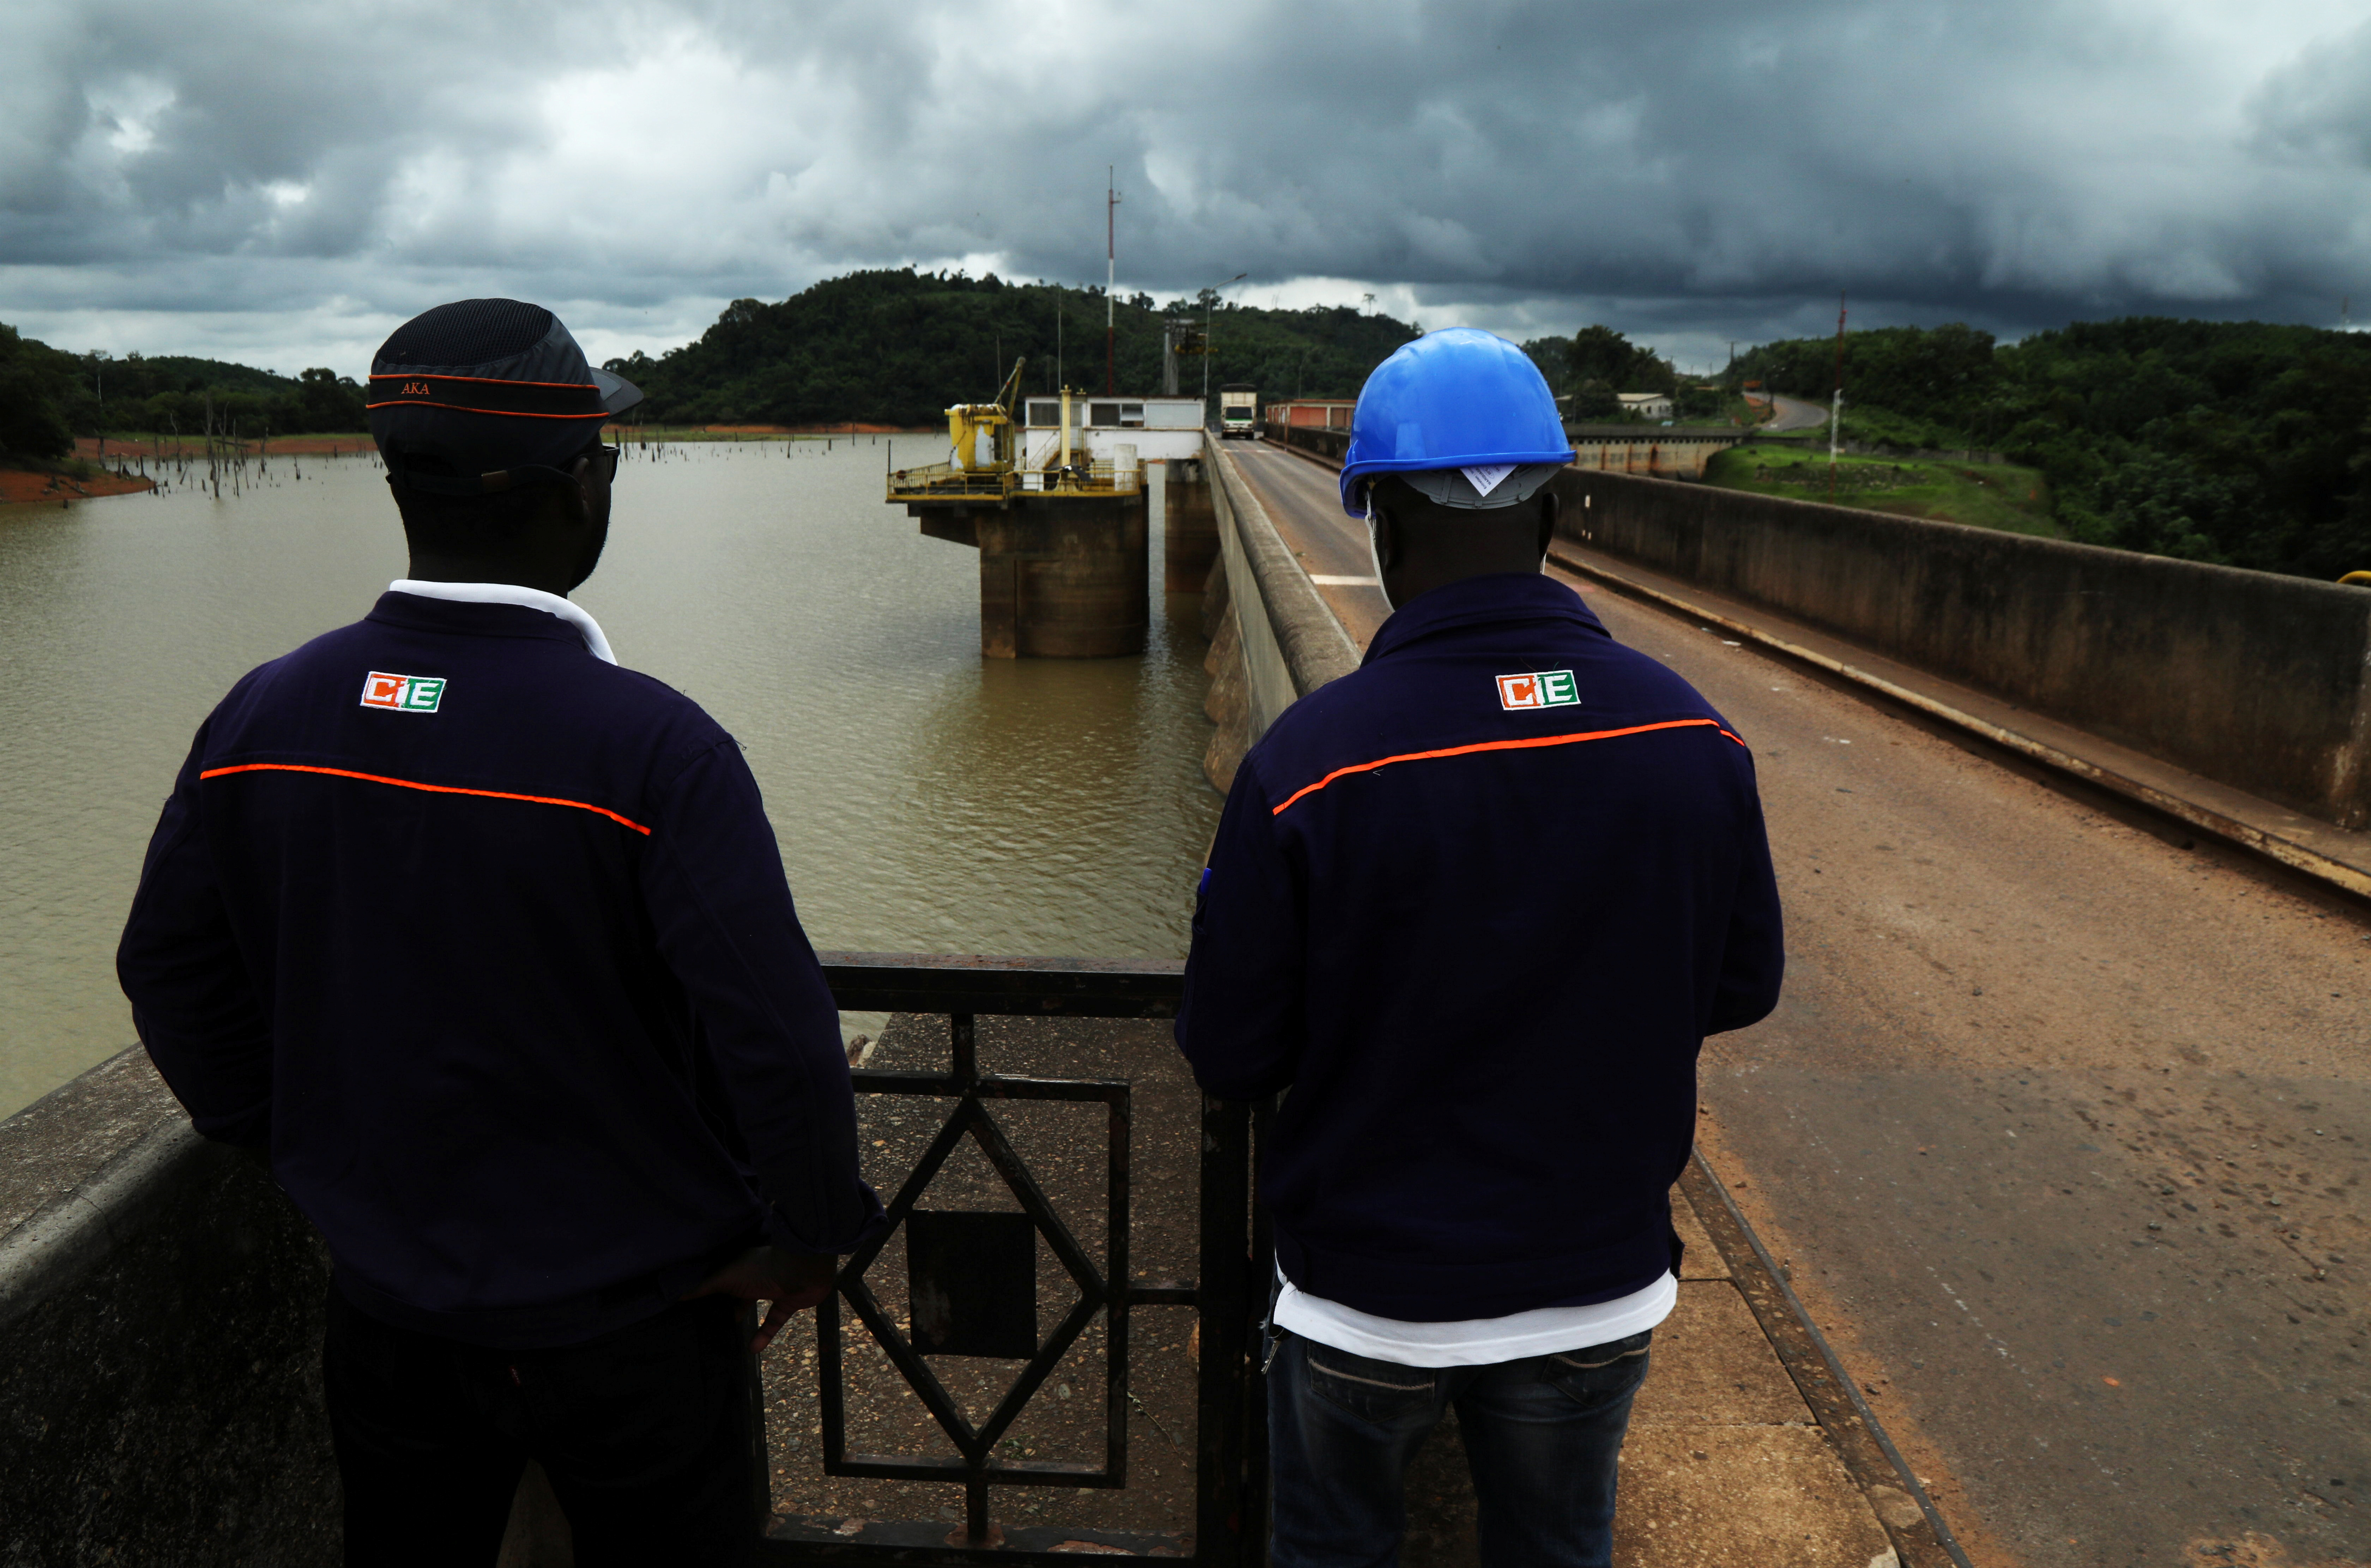 Employees of the Ivory Coast Electricity Company (CIE) examine the level of a river, which has fallen due to dry season, upstream of a hydroelectric dam in Ayame, Ivory Coast May 6, 2021. Picture taken May 6, 2021. REUTERS/Luc Gnago